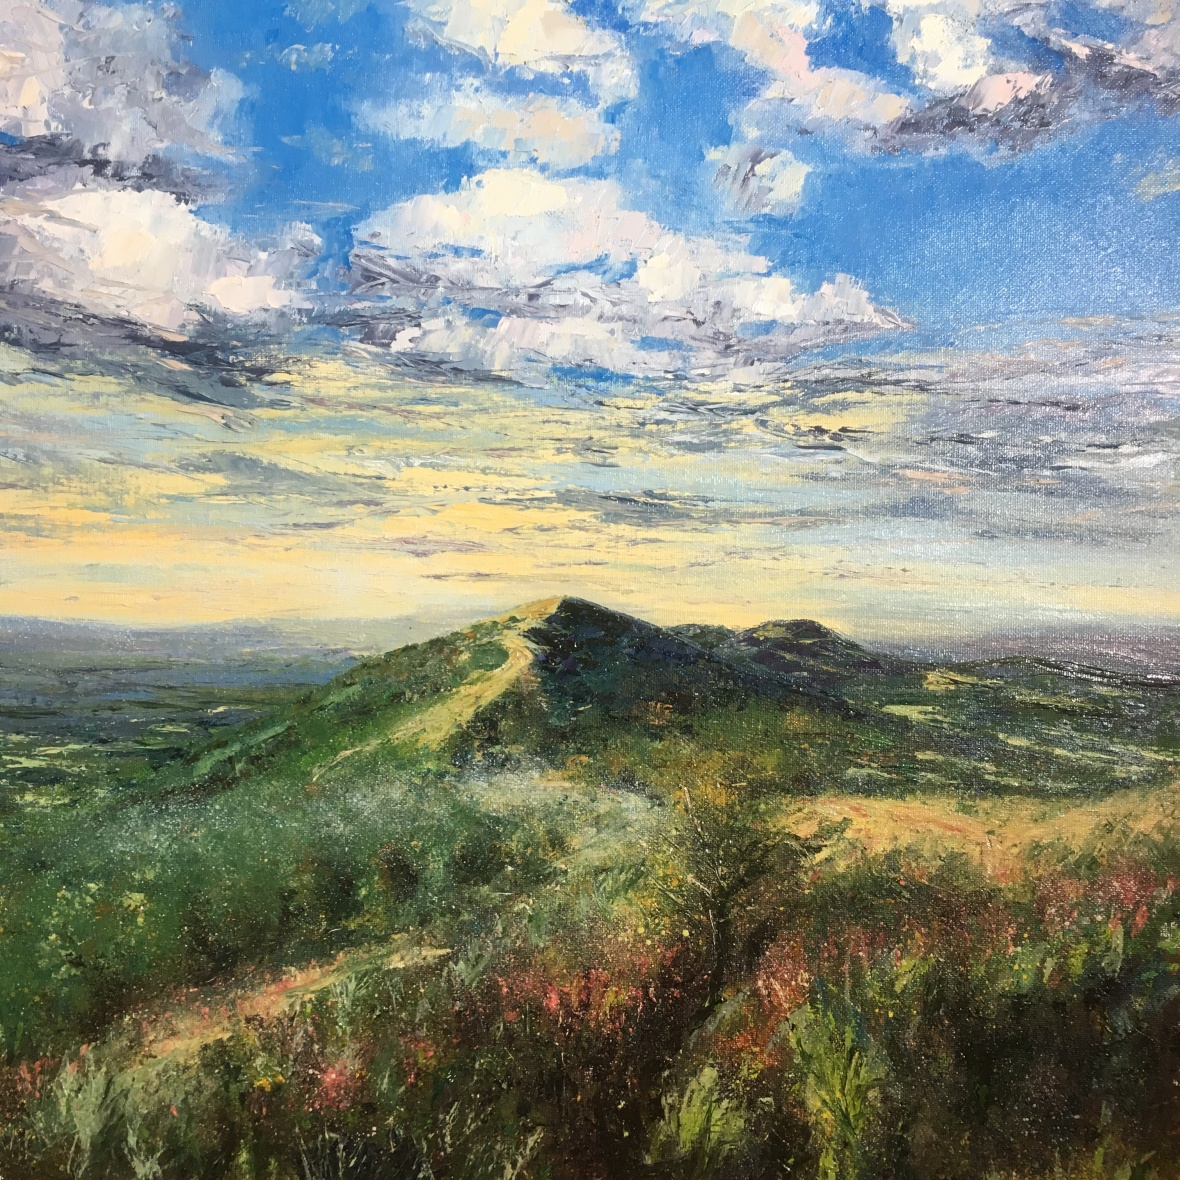 Malvern hills early morning mist oil painting by Anna Cumming